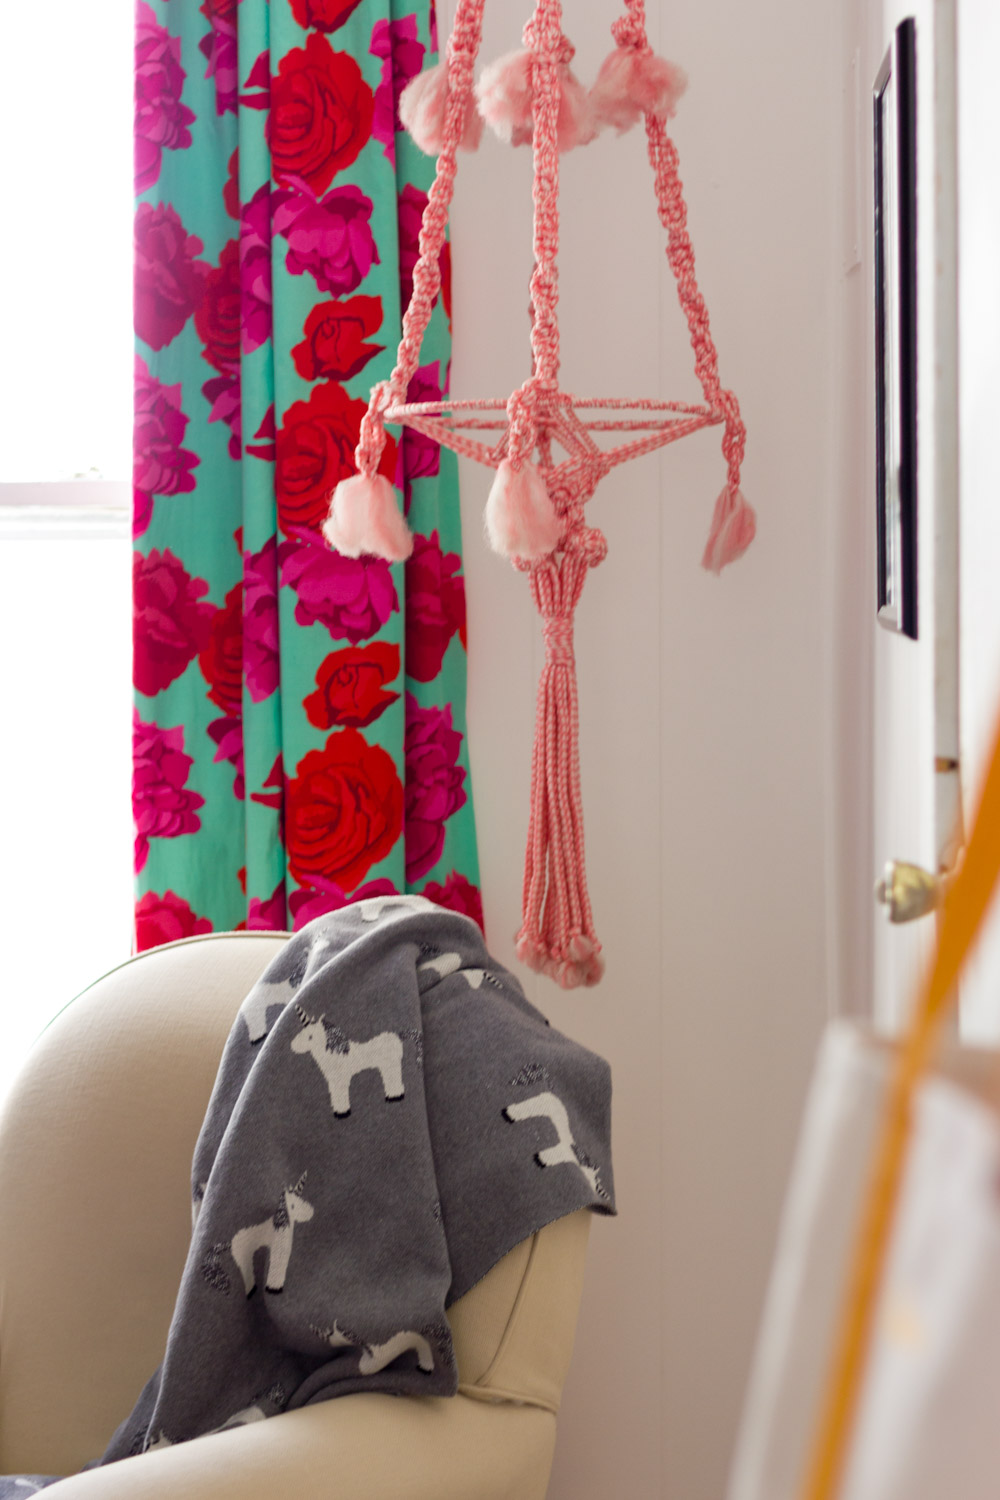 How To Make Lined Curtain Panels Curtains For The Nursery And How To Make Your Own Lined Curtain